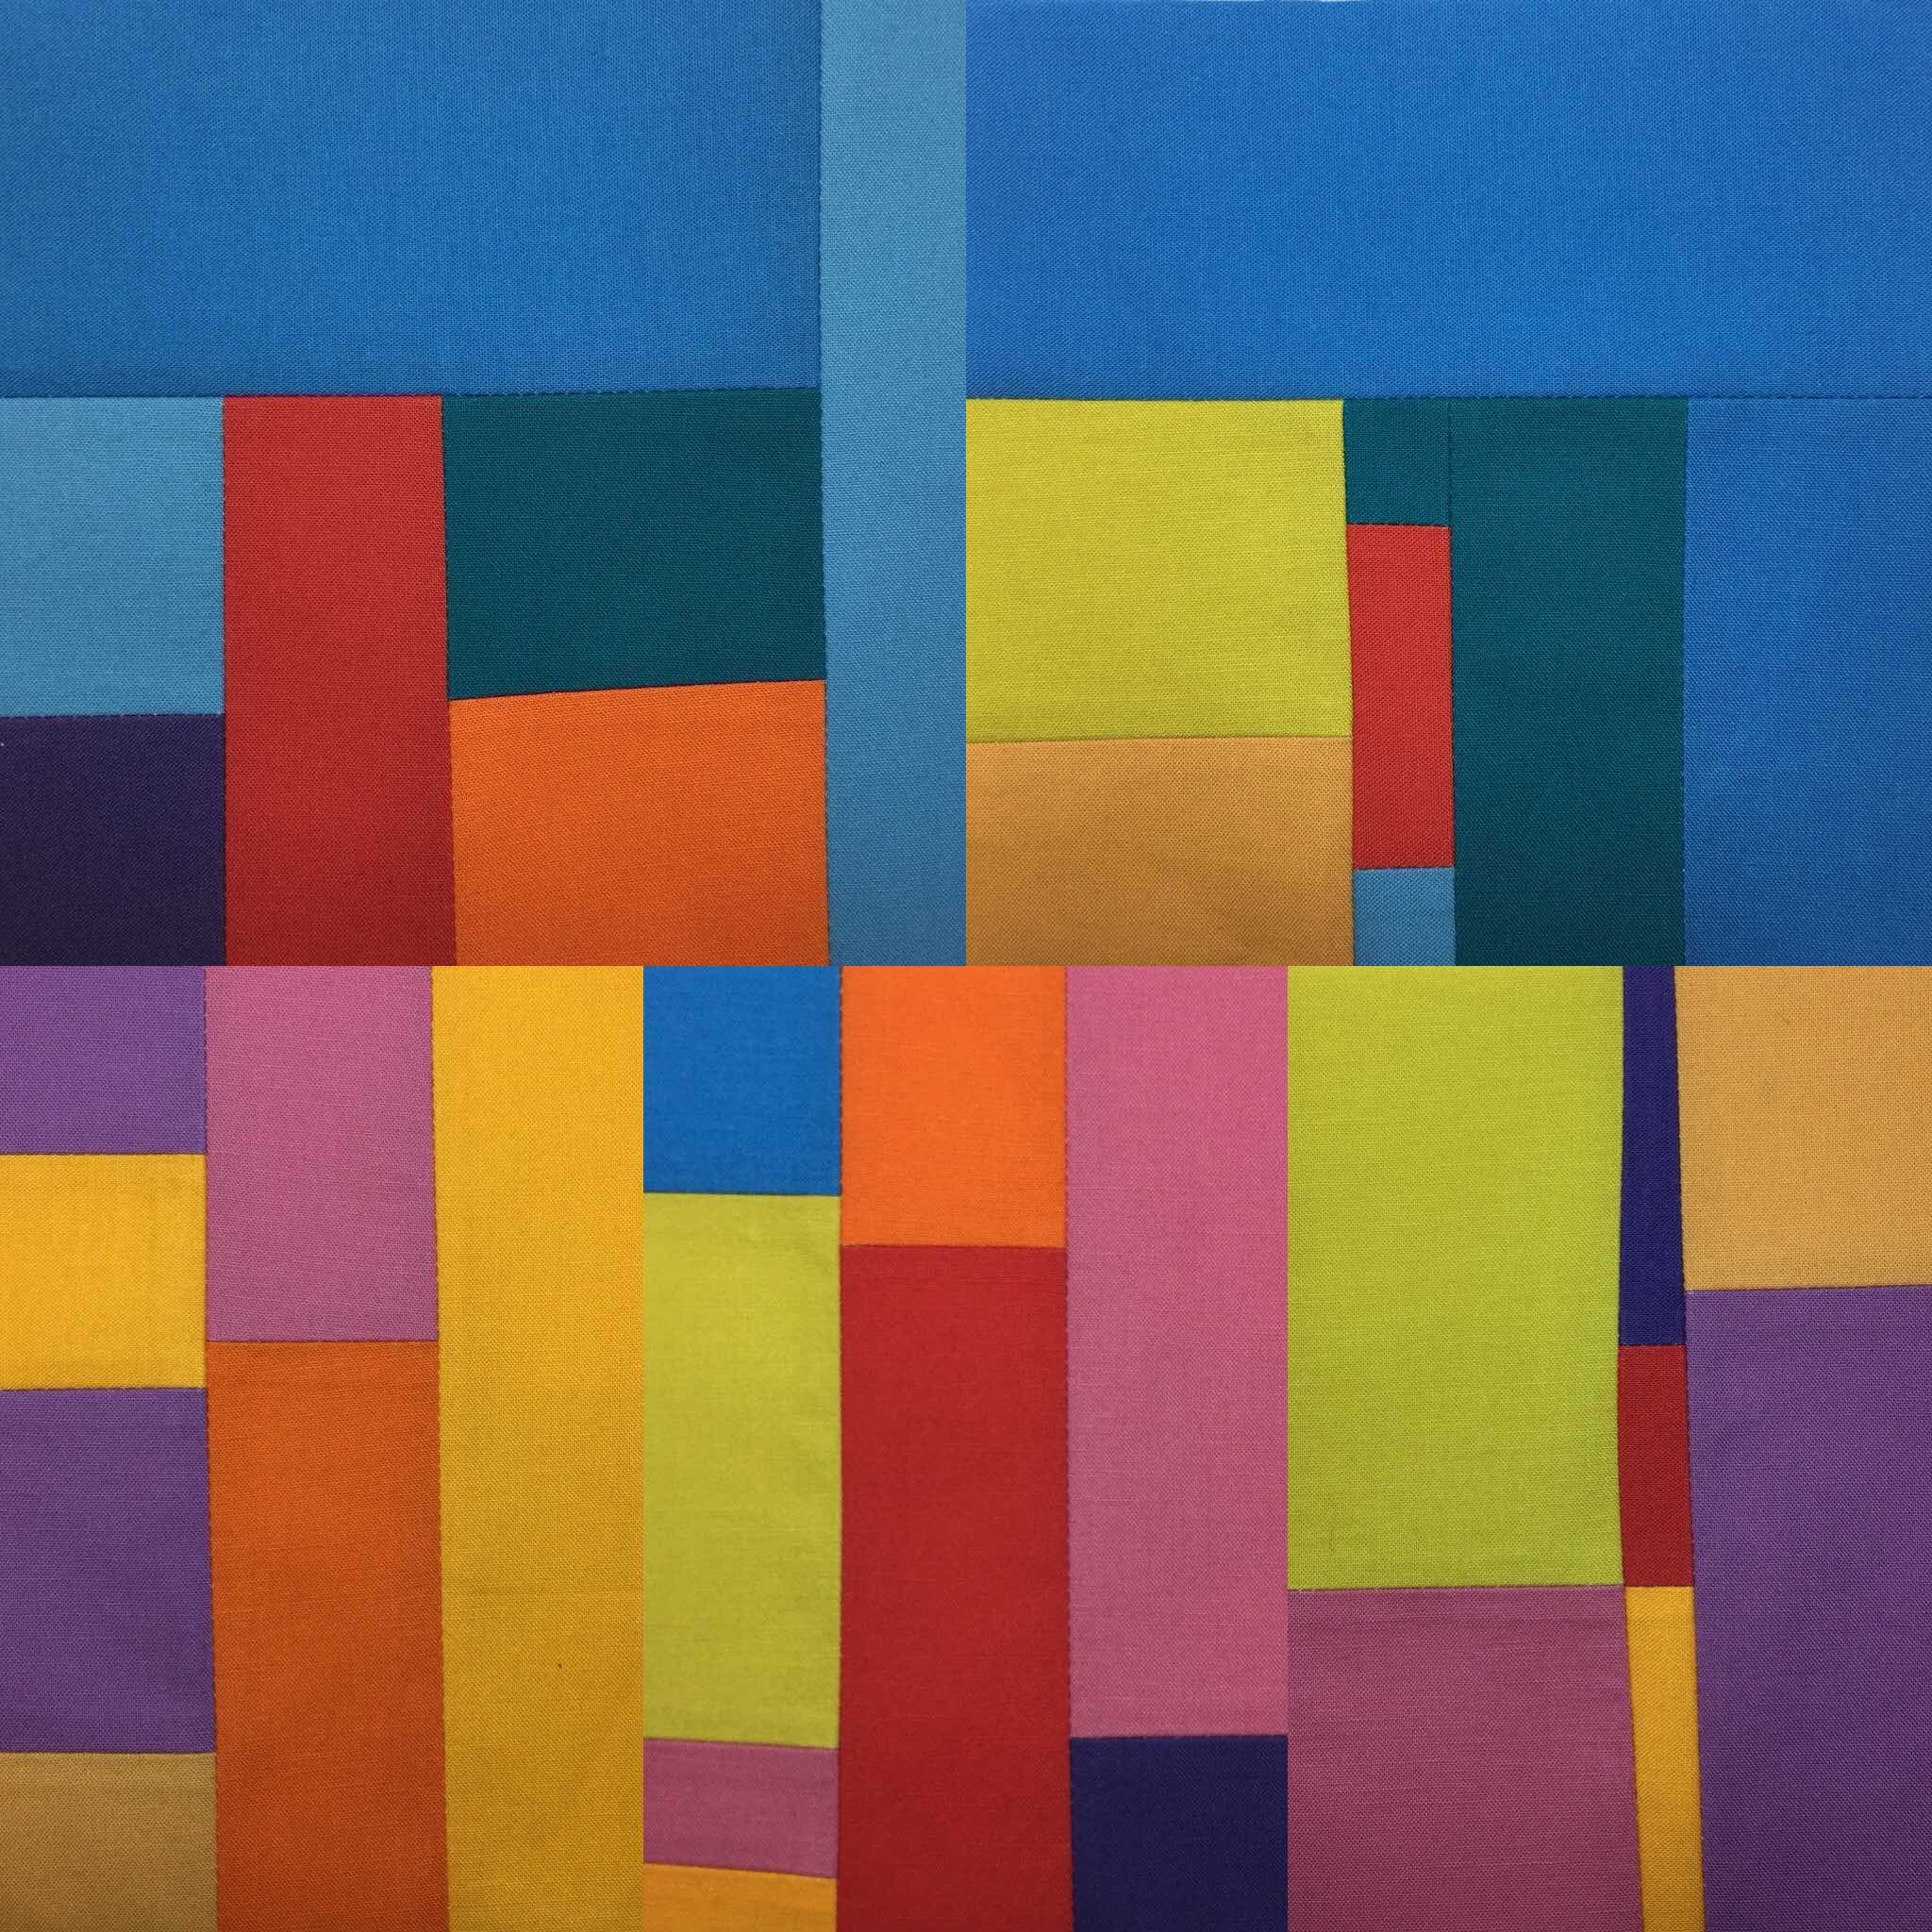 Four squares together from my current Coral Reef-Lizard Island series